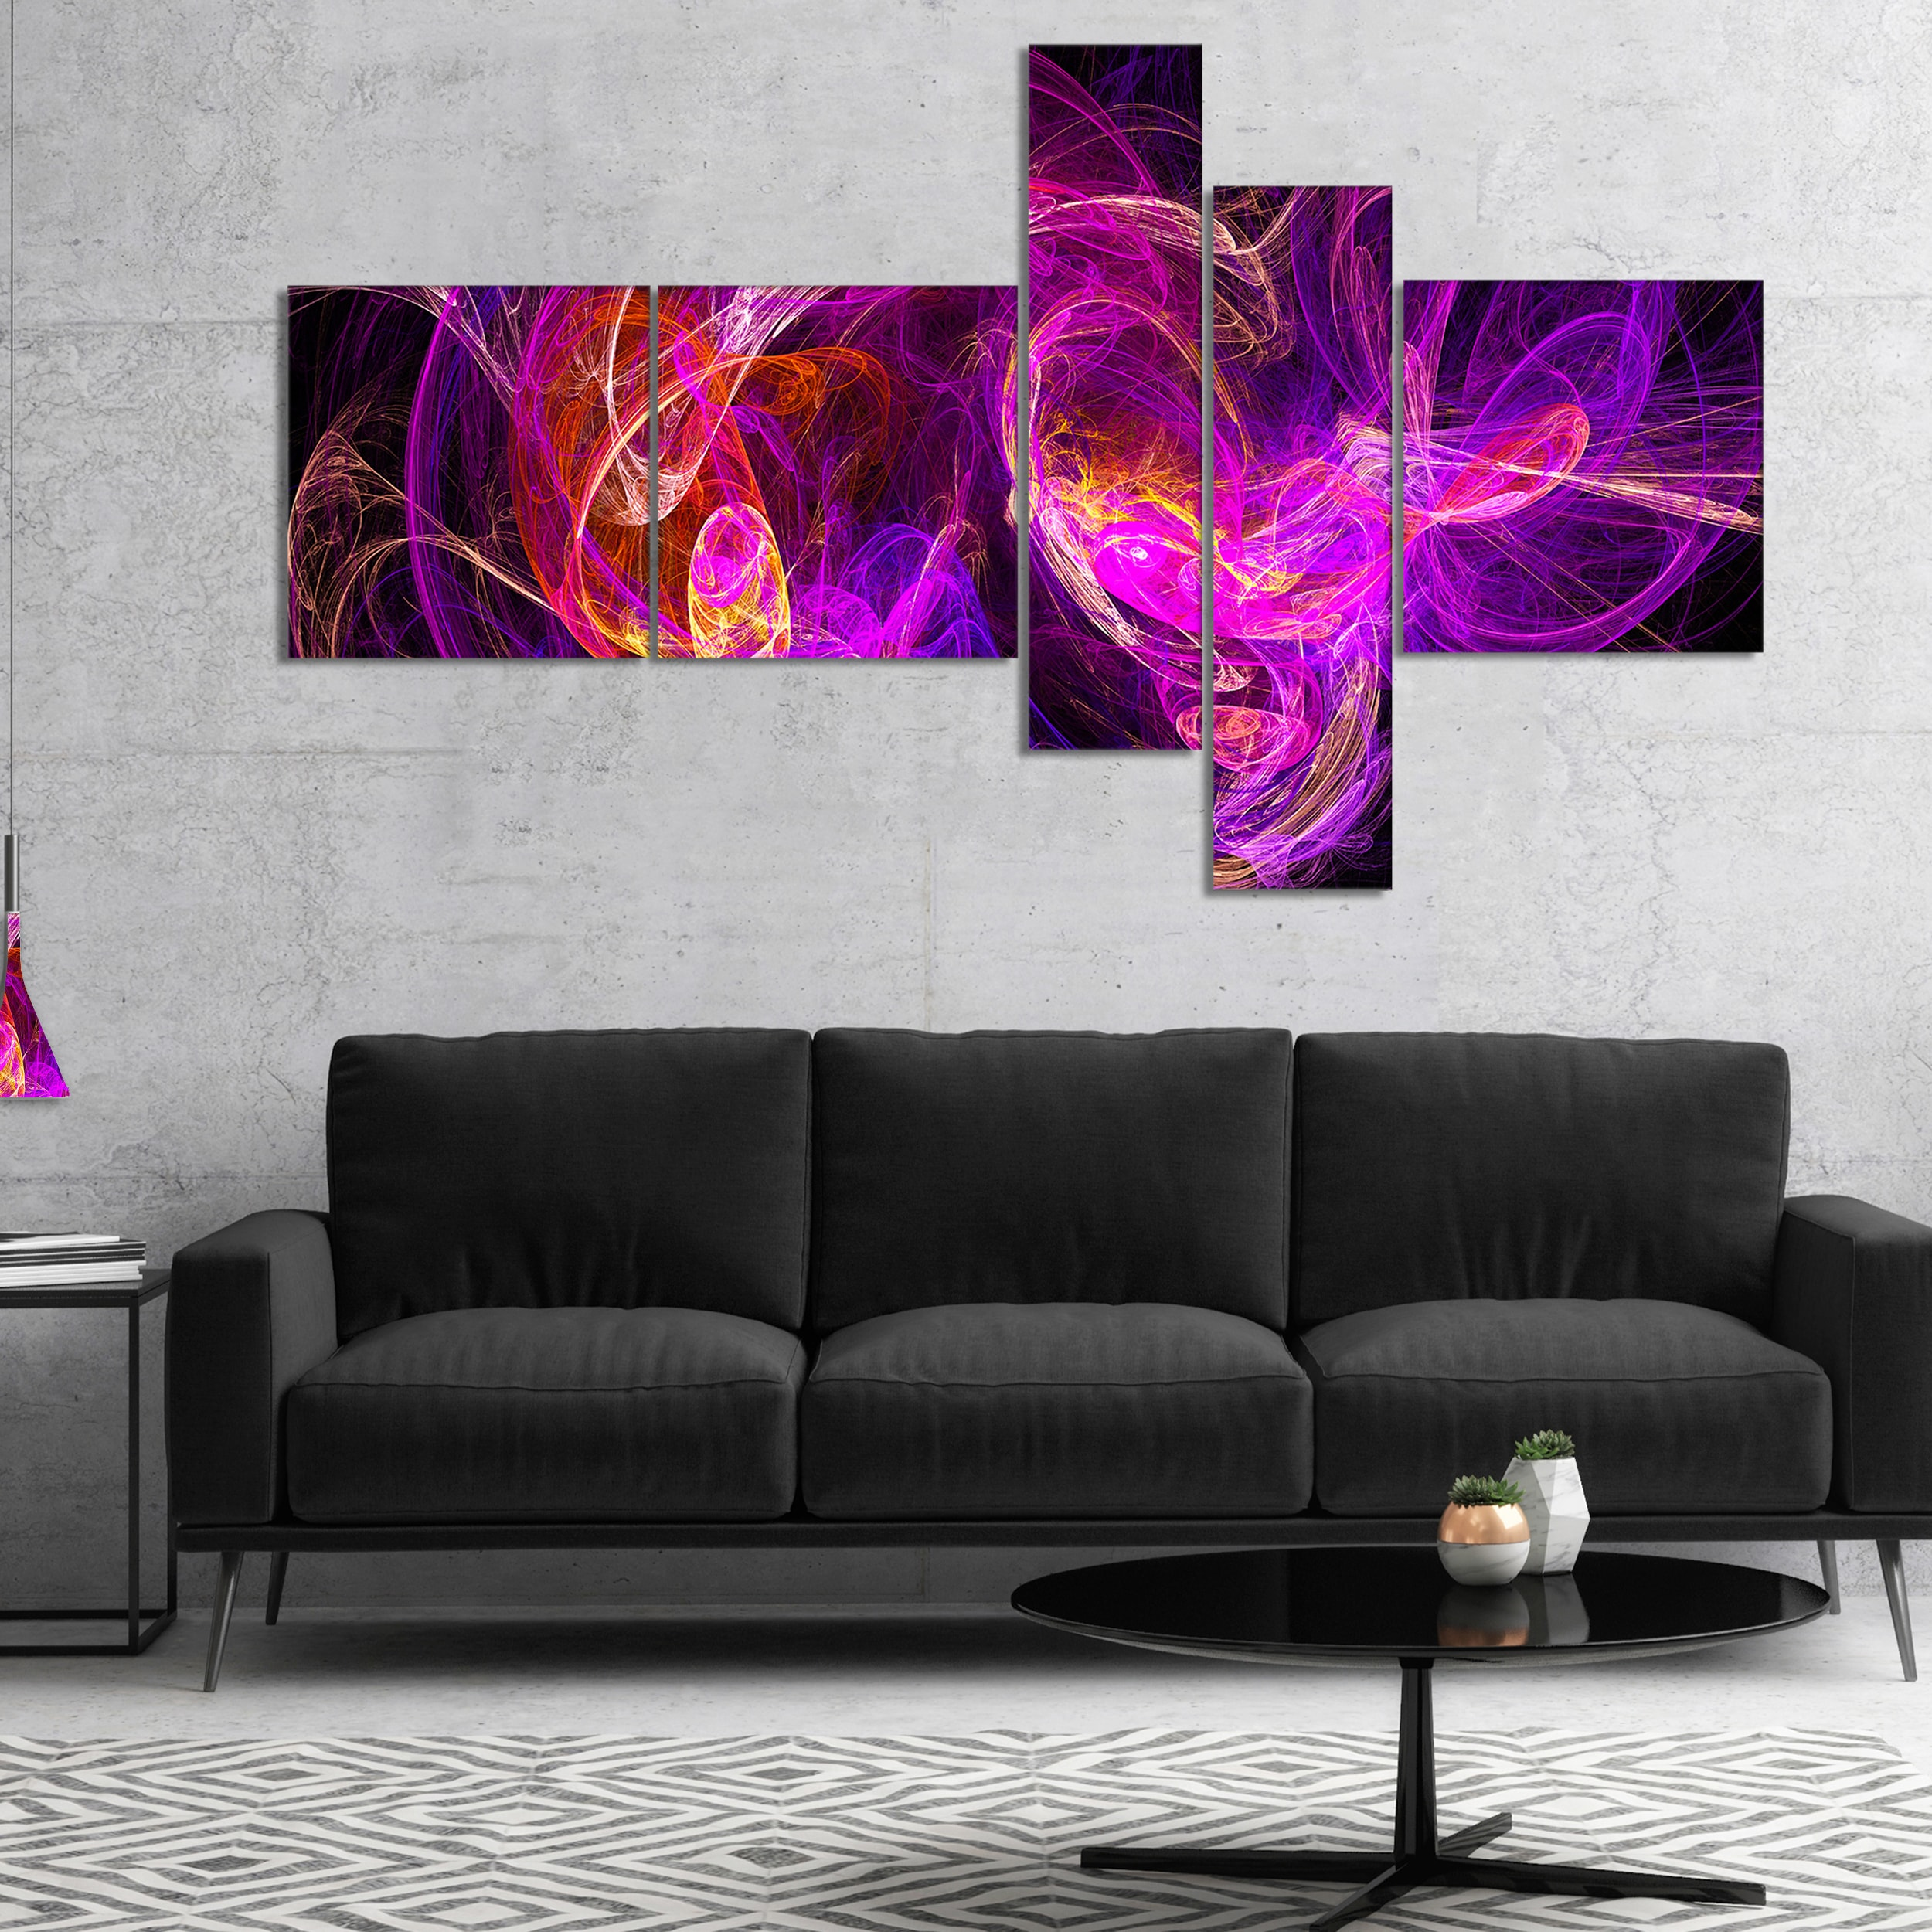 Designart Colored Smoke Blue Purple Abstract Canvas Art Print Overstock 17013393